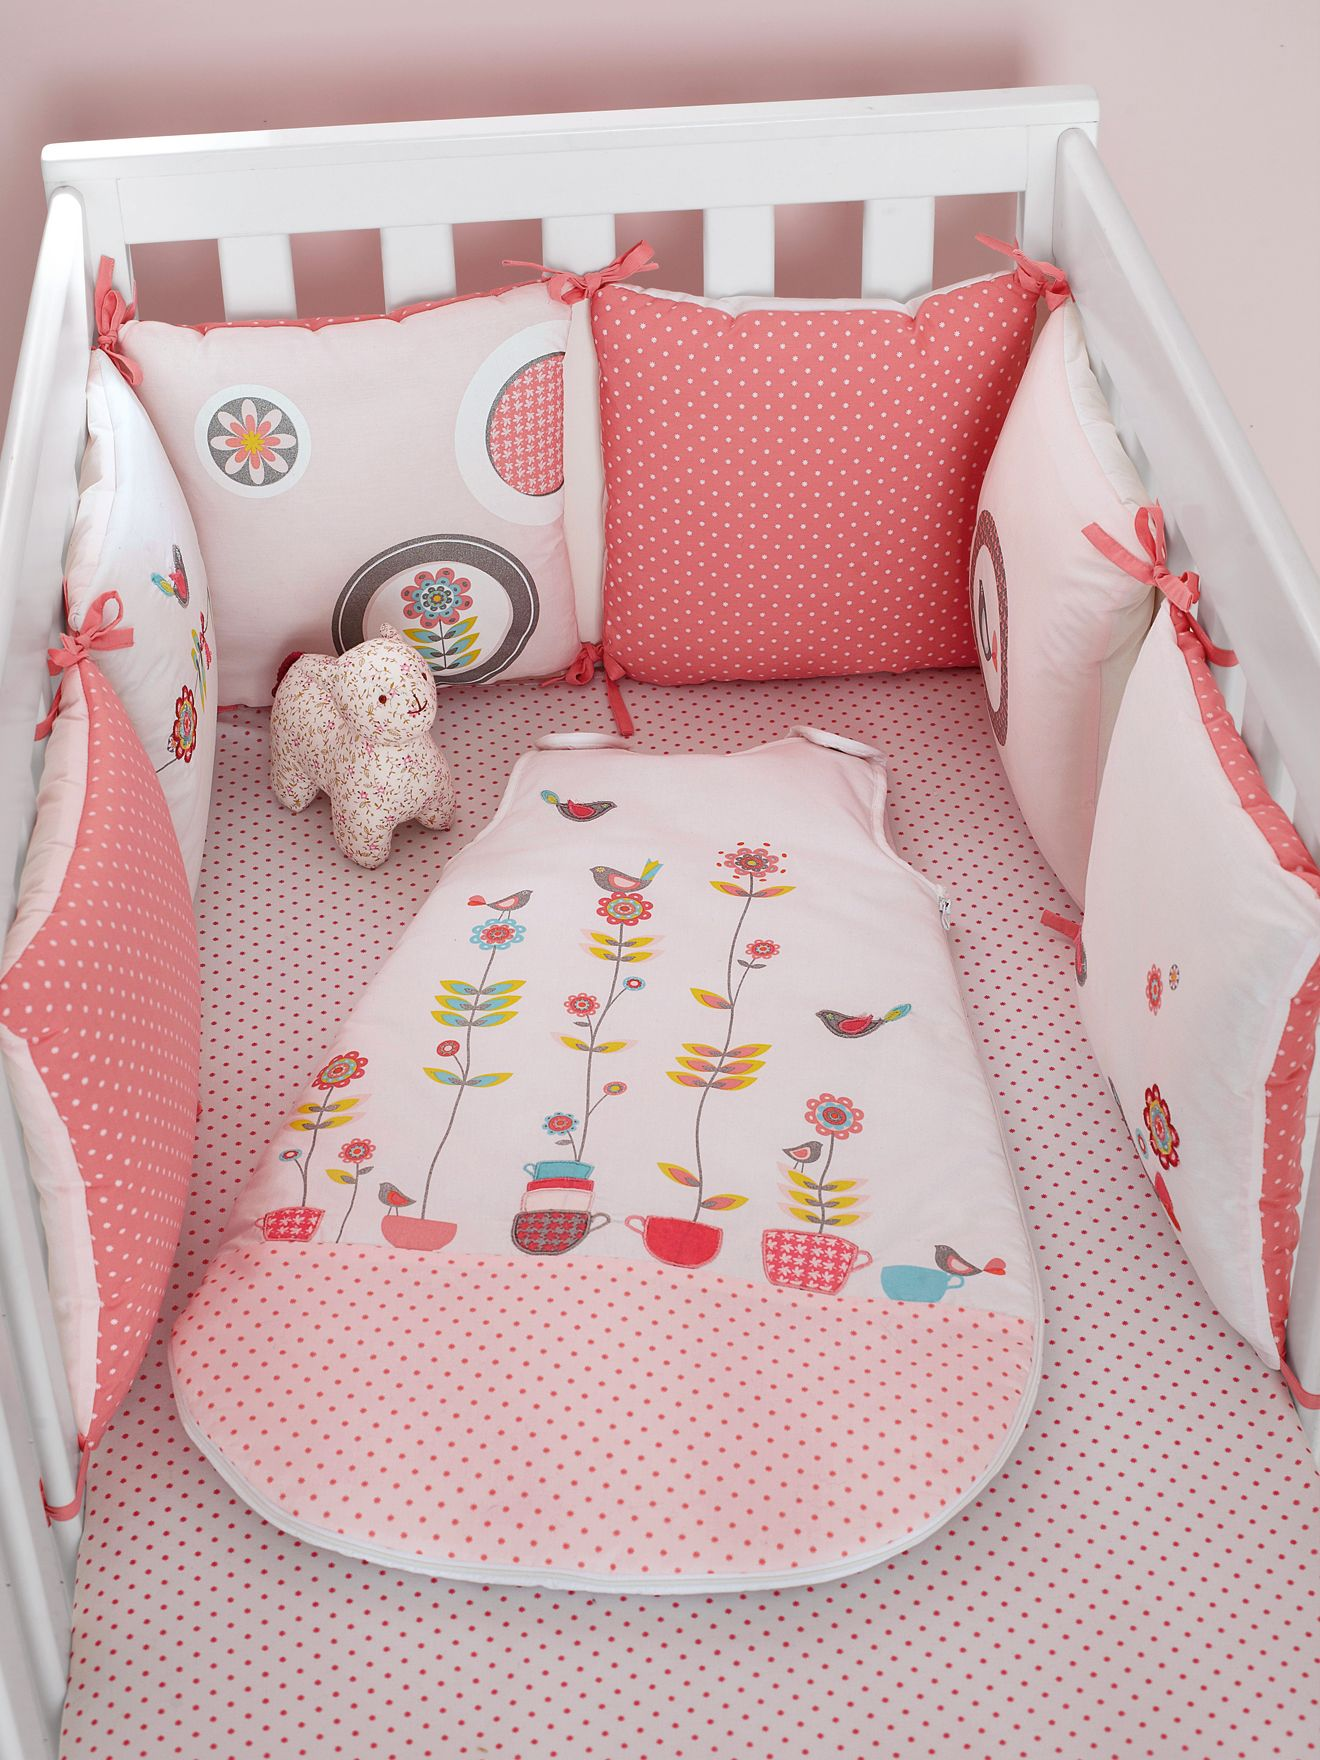 Tour de lit bb zara home latest kids collection winter - Parure de lit zara home ...